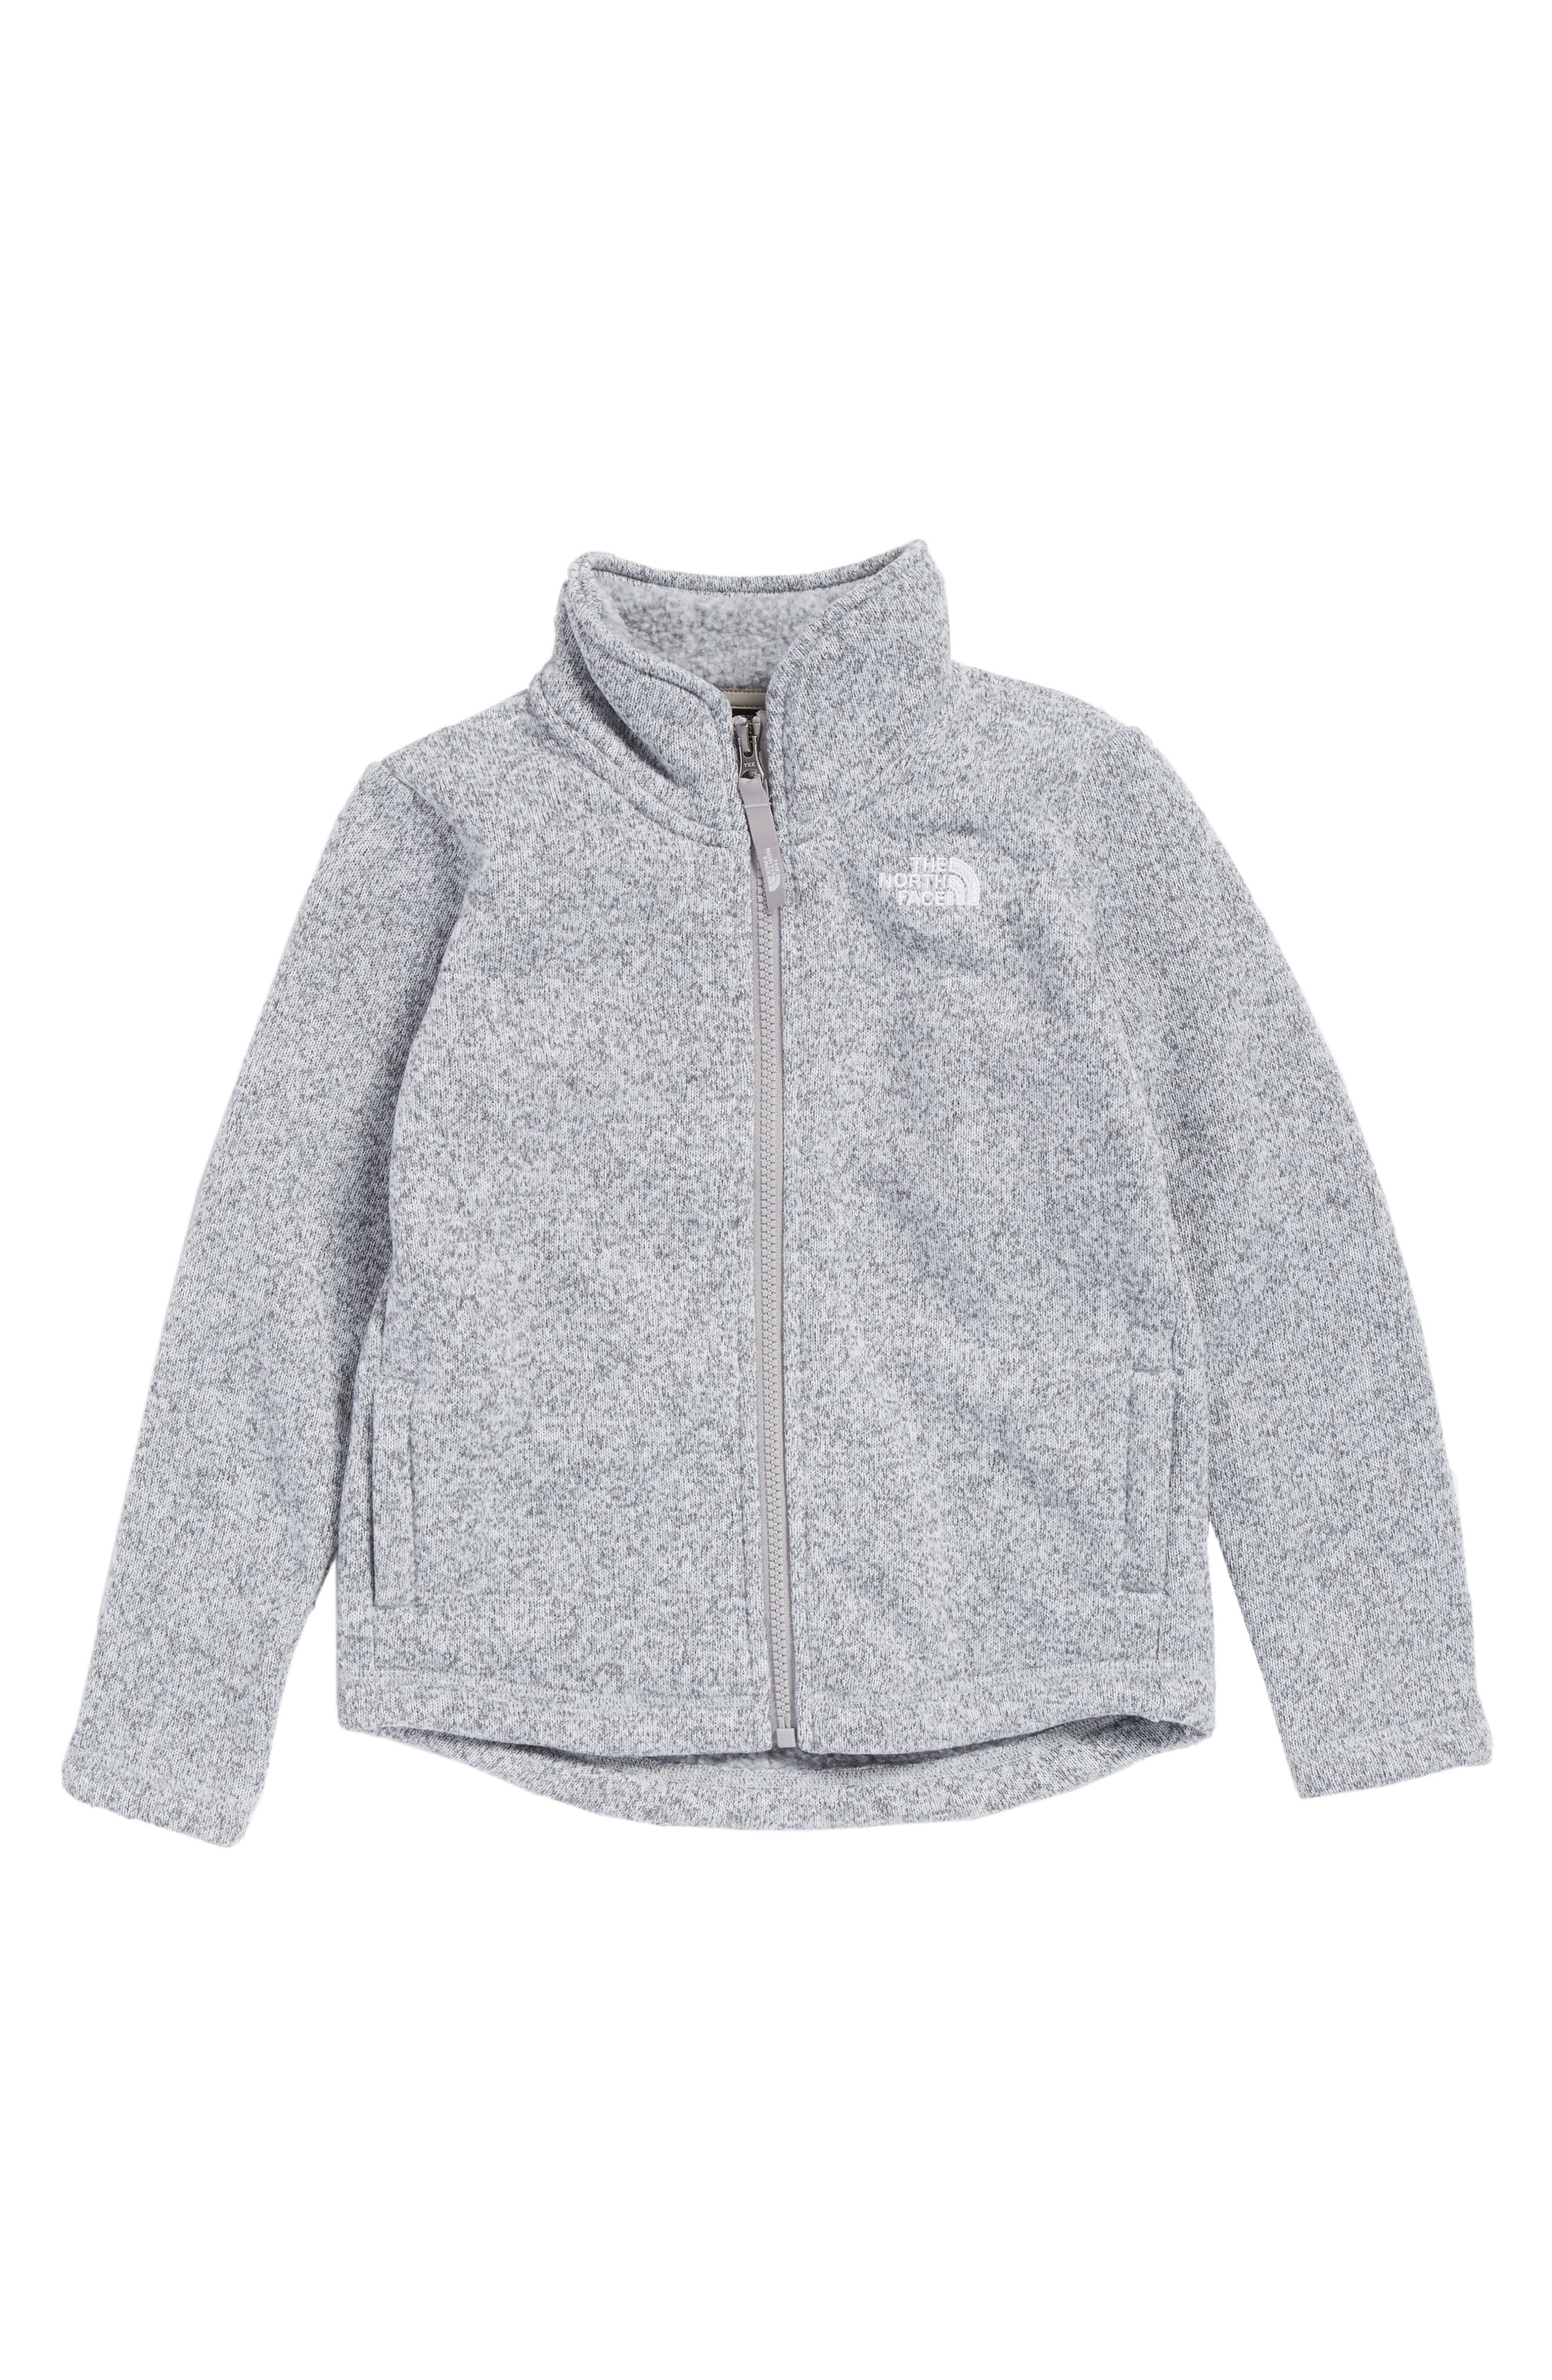 Main Image - The North Face Crescent Fleece Jacket (Toddler Girls & Little Girls)